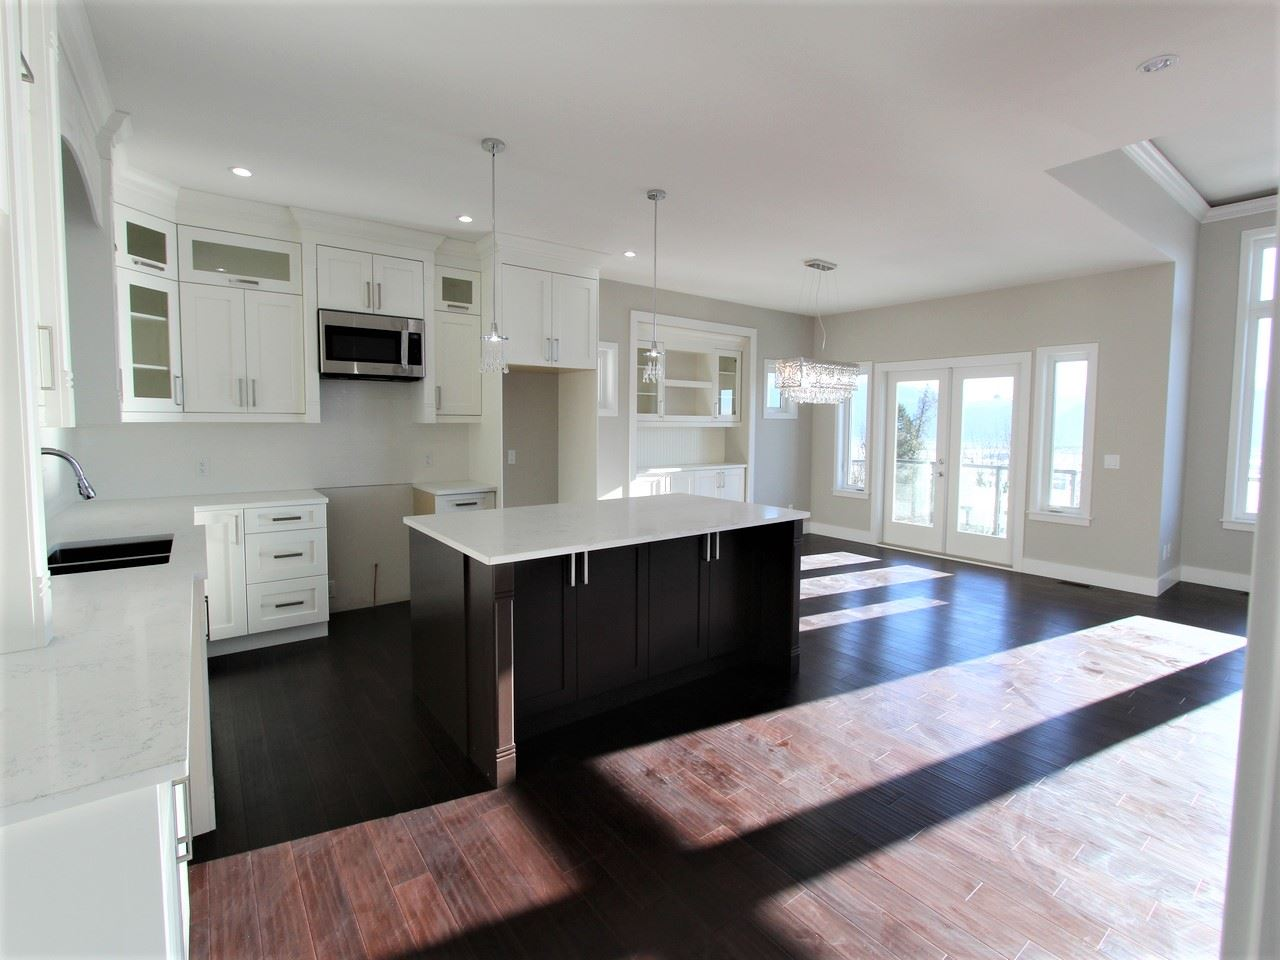 "Photo 6: 36505 FLORENCE Drive in Abbotsford: Abbotsford East House for sale in ""FALCON RIDGE"" : MLS® # R2130940"